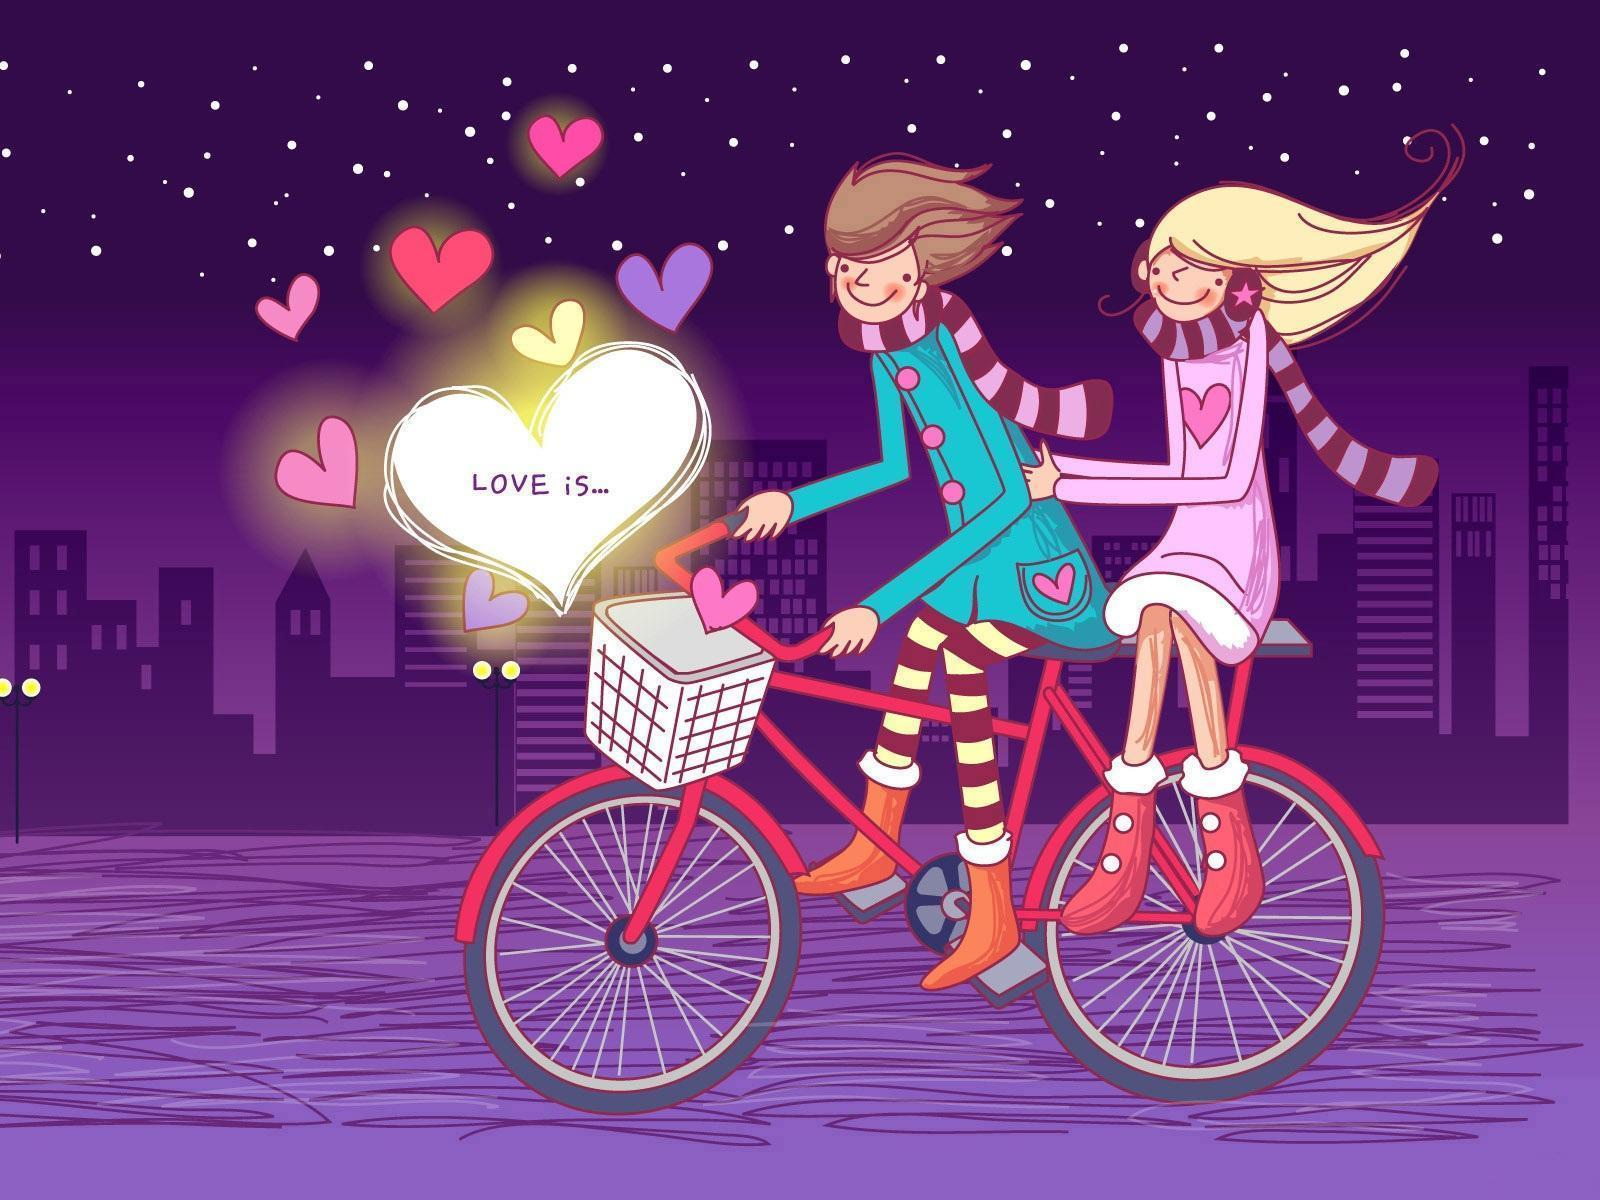 Romantic Couples Anime Wallpapers - Download Romantic - HD Wallpaper